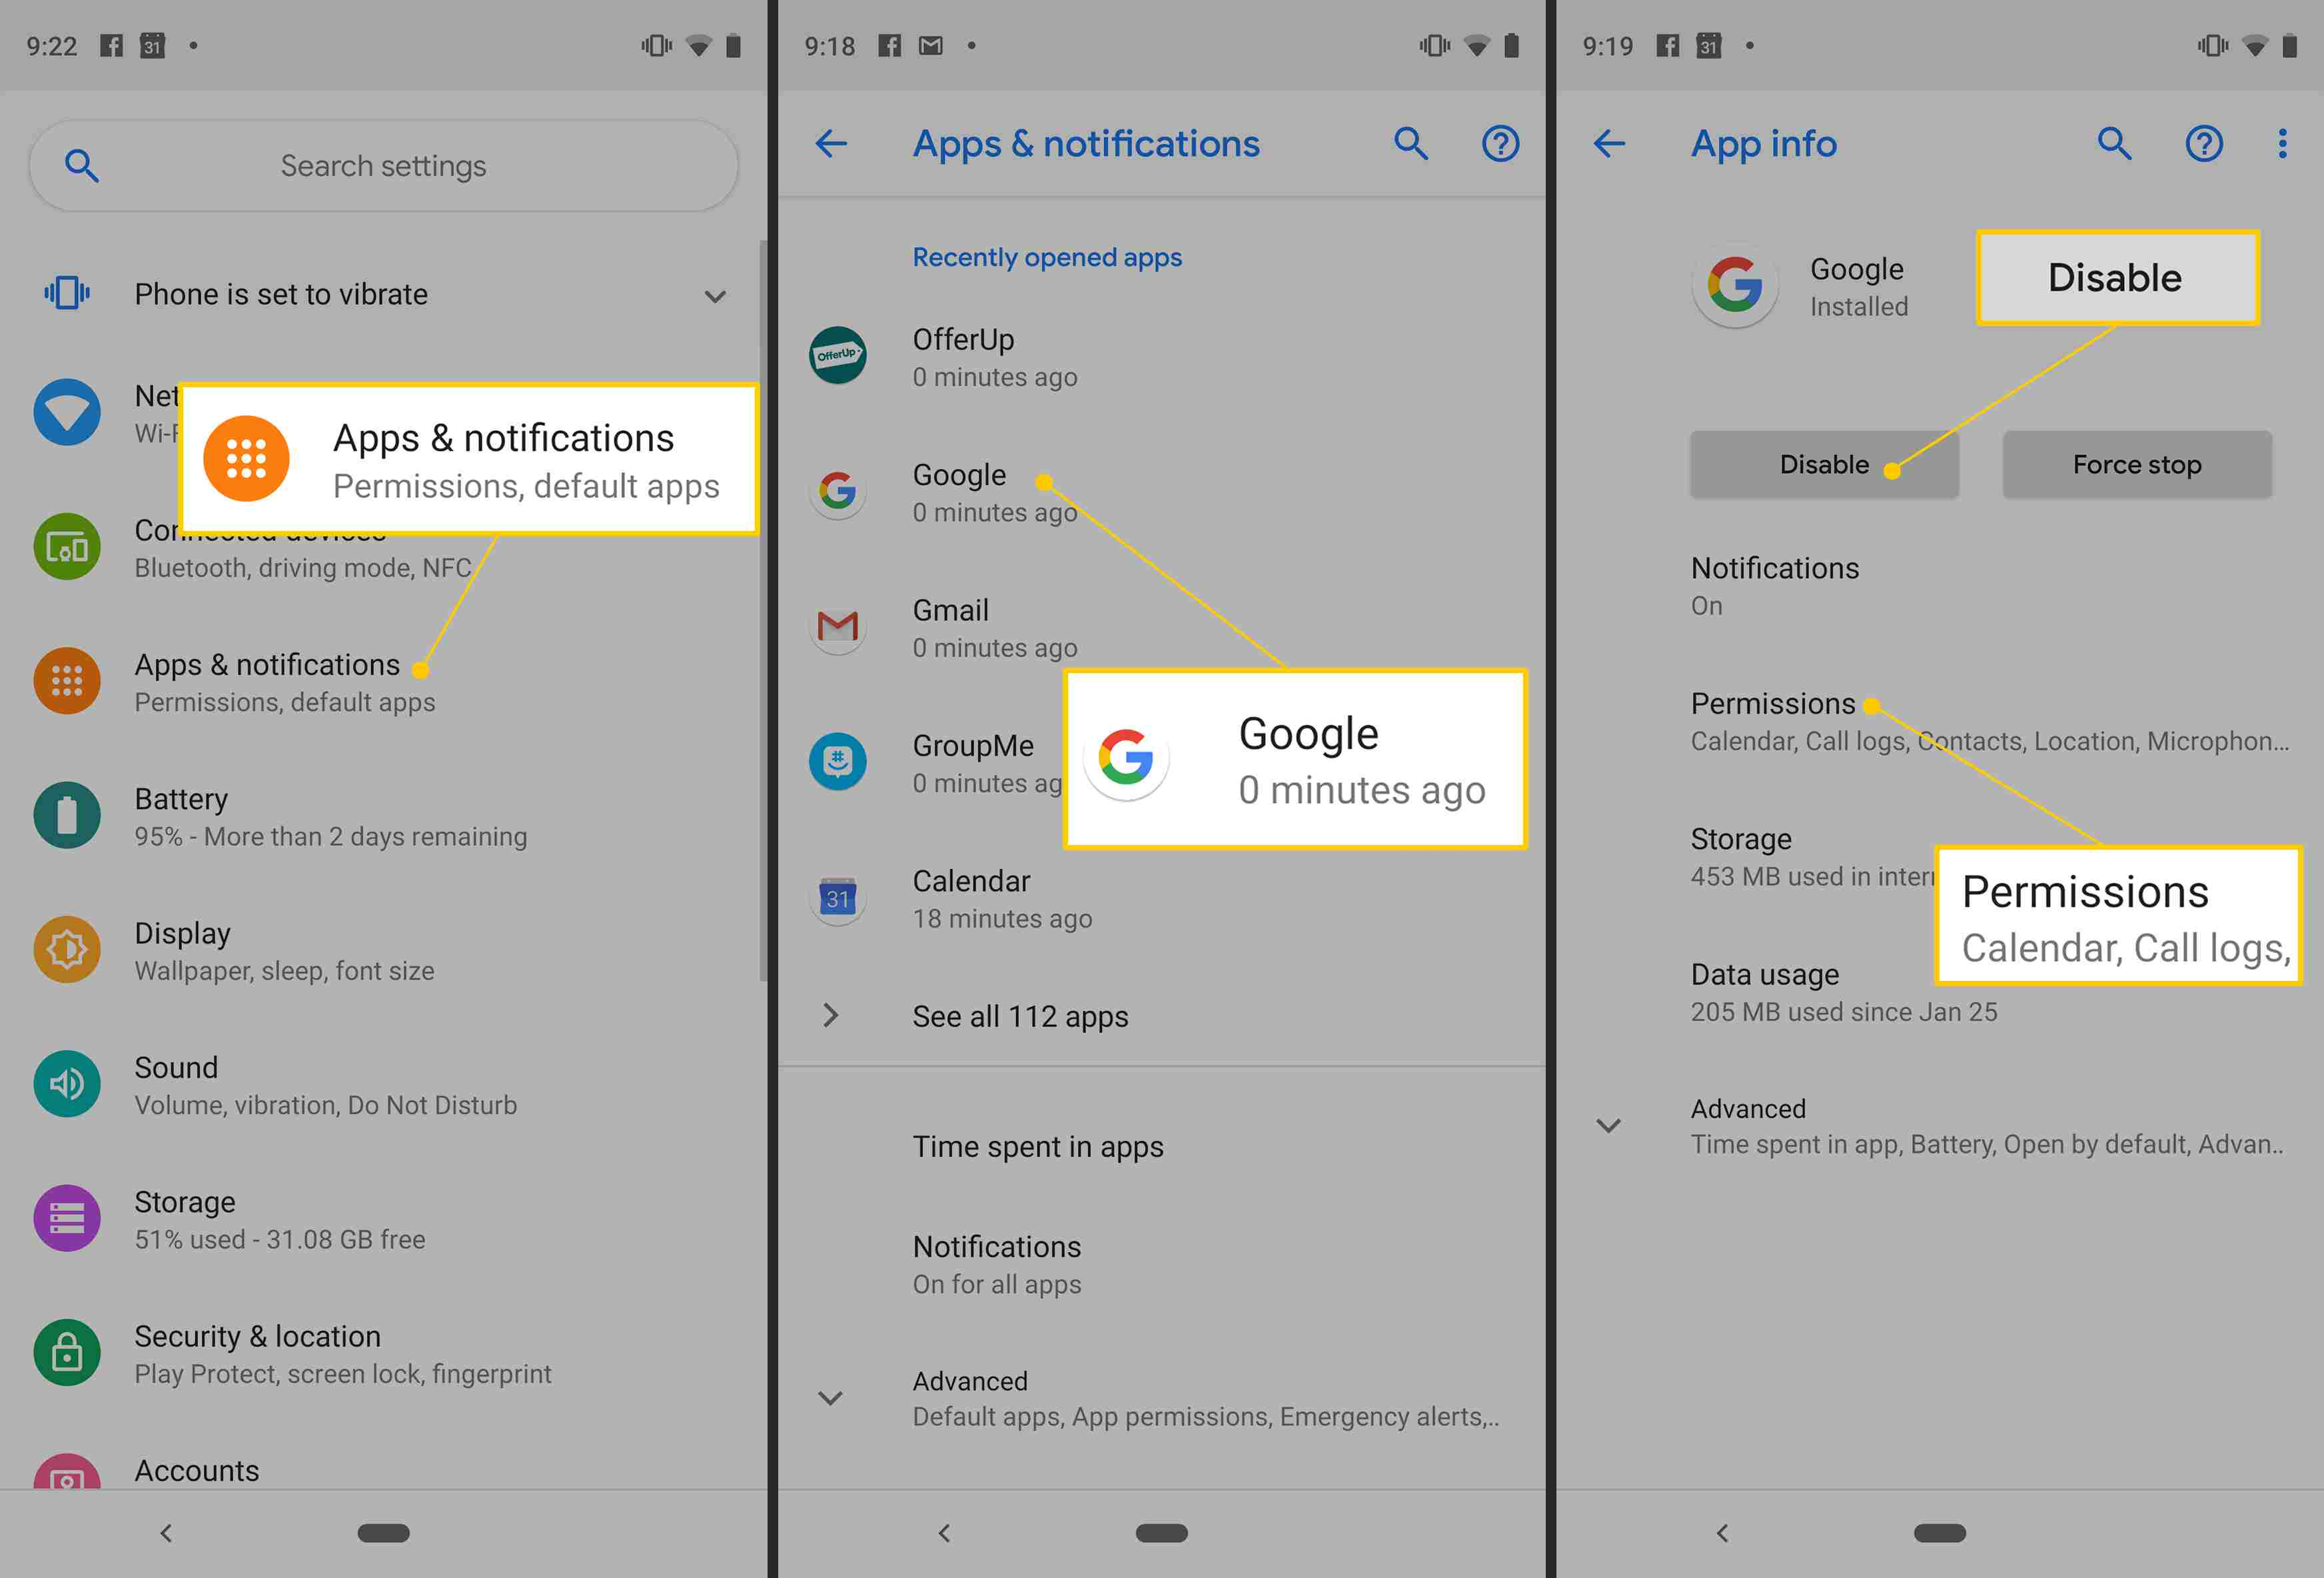 Apps & notifications, Google, Disable, and Permissions buttons in Android Settings